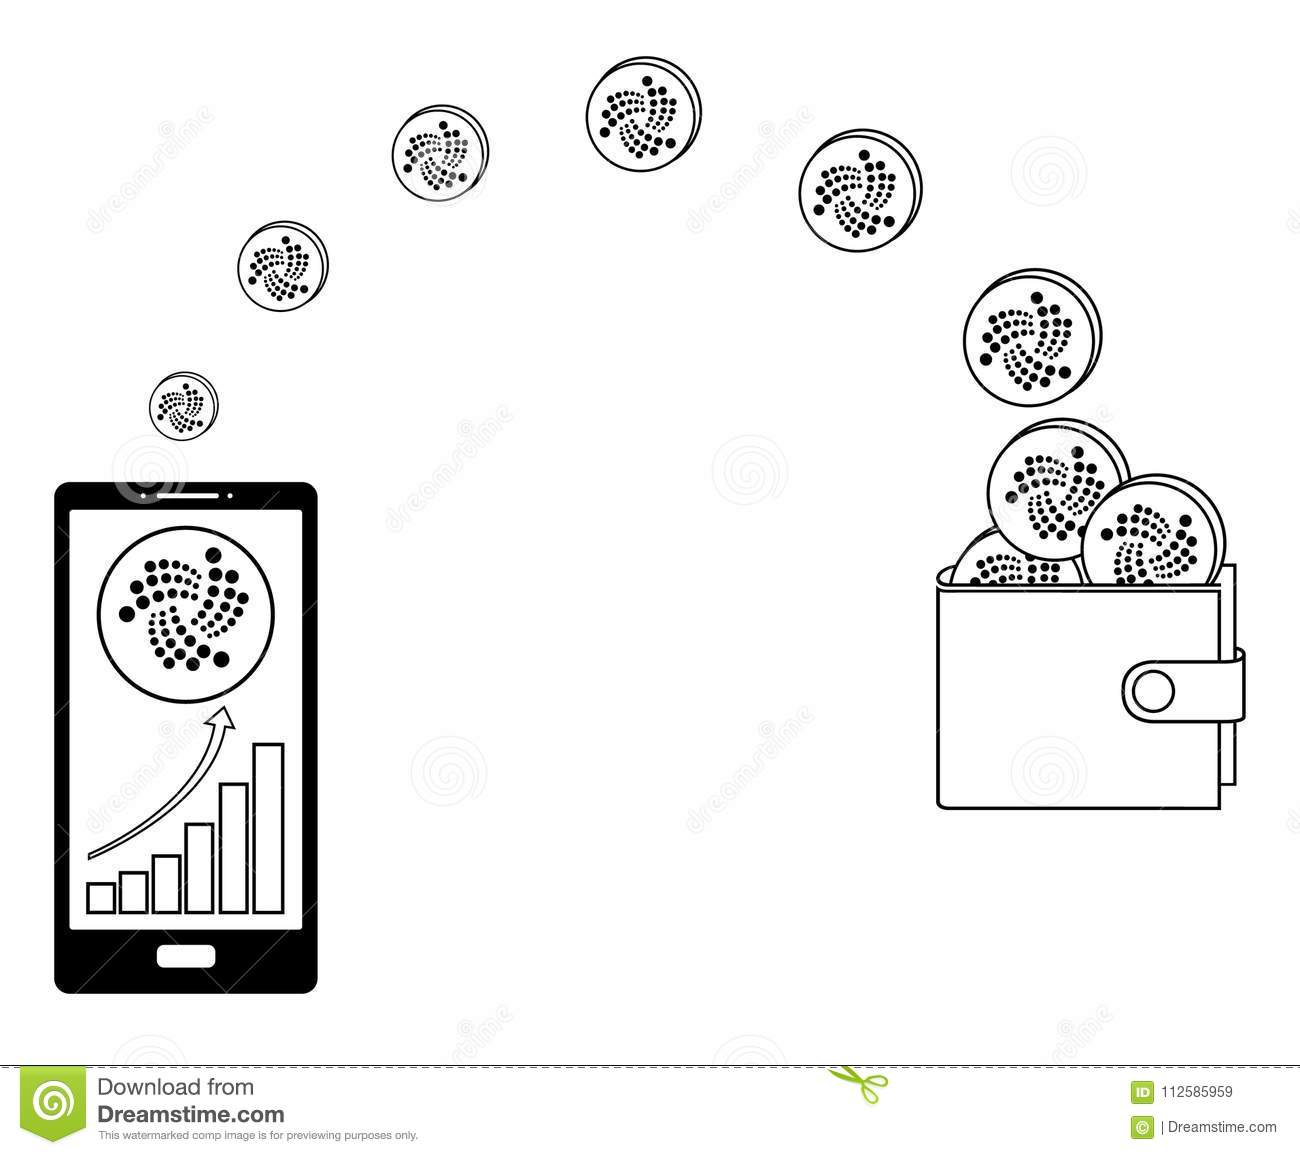 Transfer Iota Coins From Phone To Wallet Stock Vector